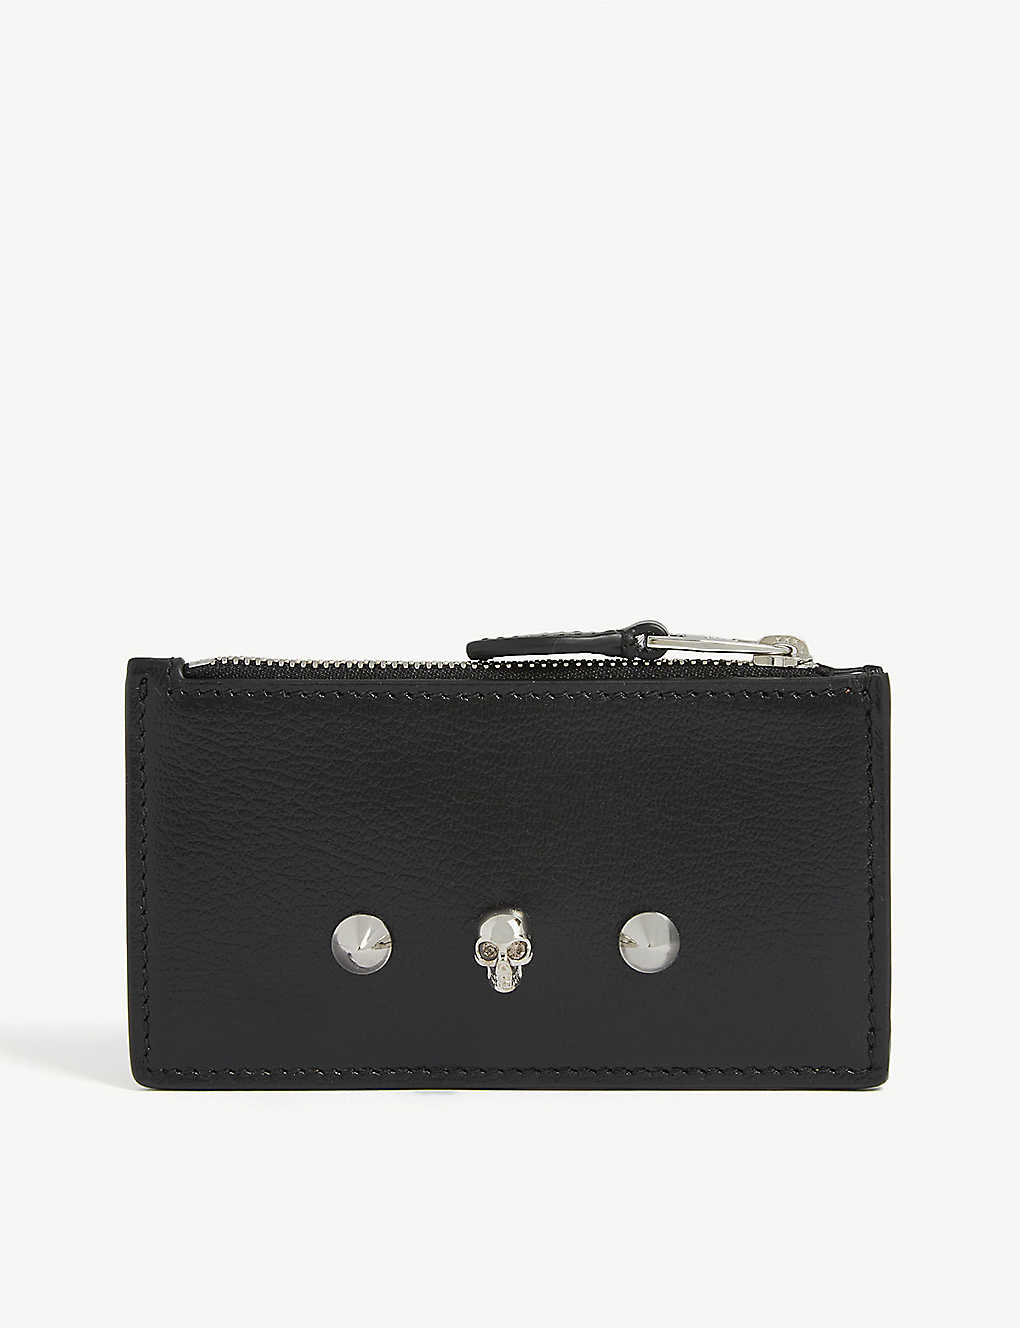 ALEXANDER MCQUEEN: Skull and stud leather card holder